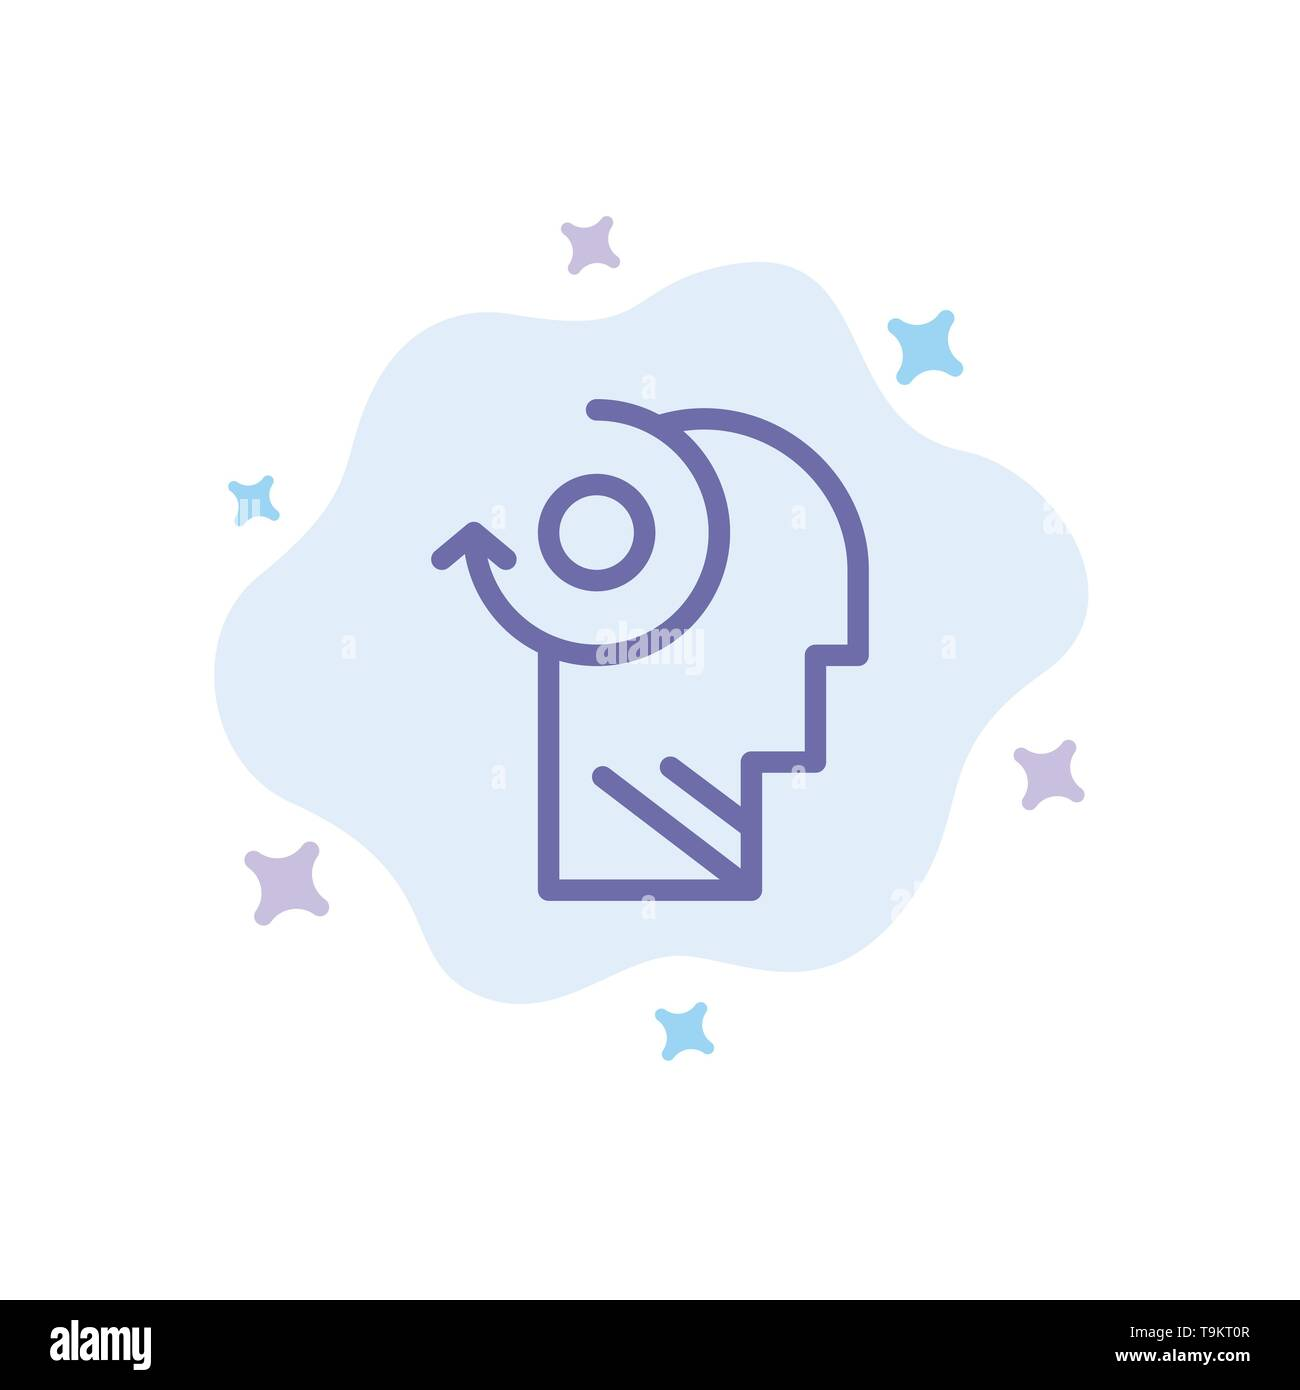 Clear, Mind, Your, Head Blue Icon on Abstract Cloud Background - Stock Image